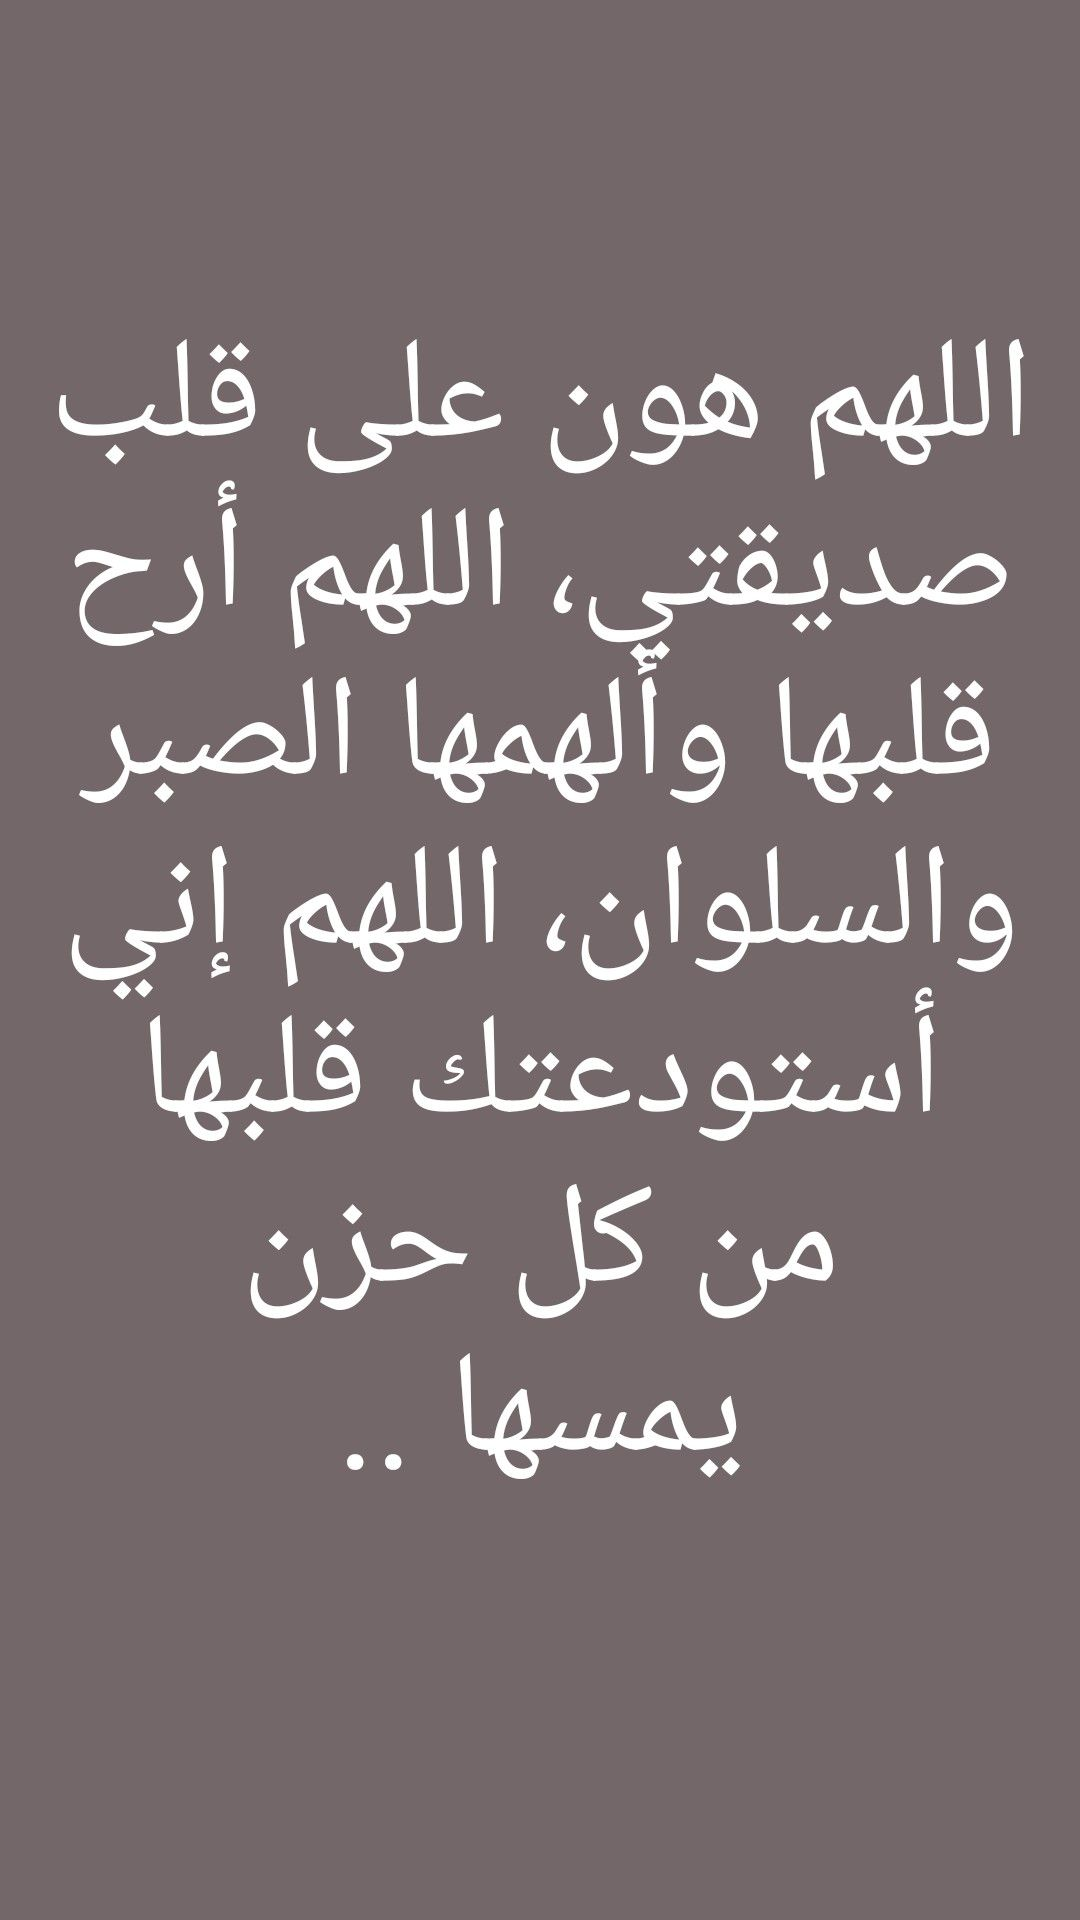 Pin By Durra A On صديقتي Love Quotes Quotes Friendship